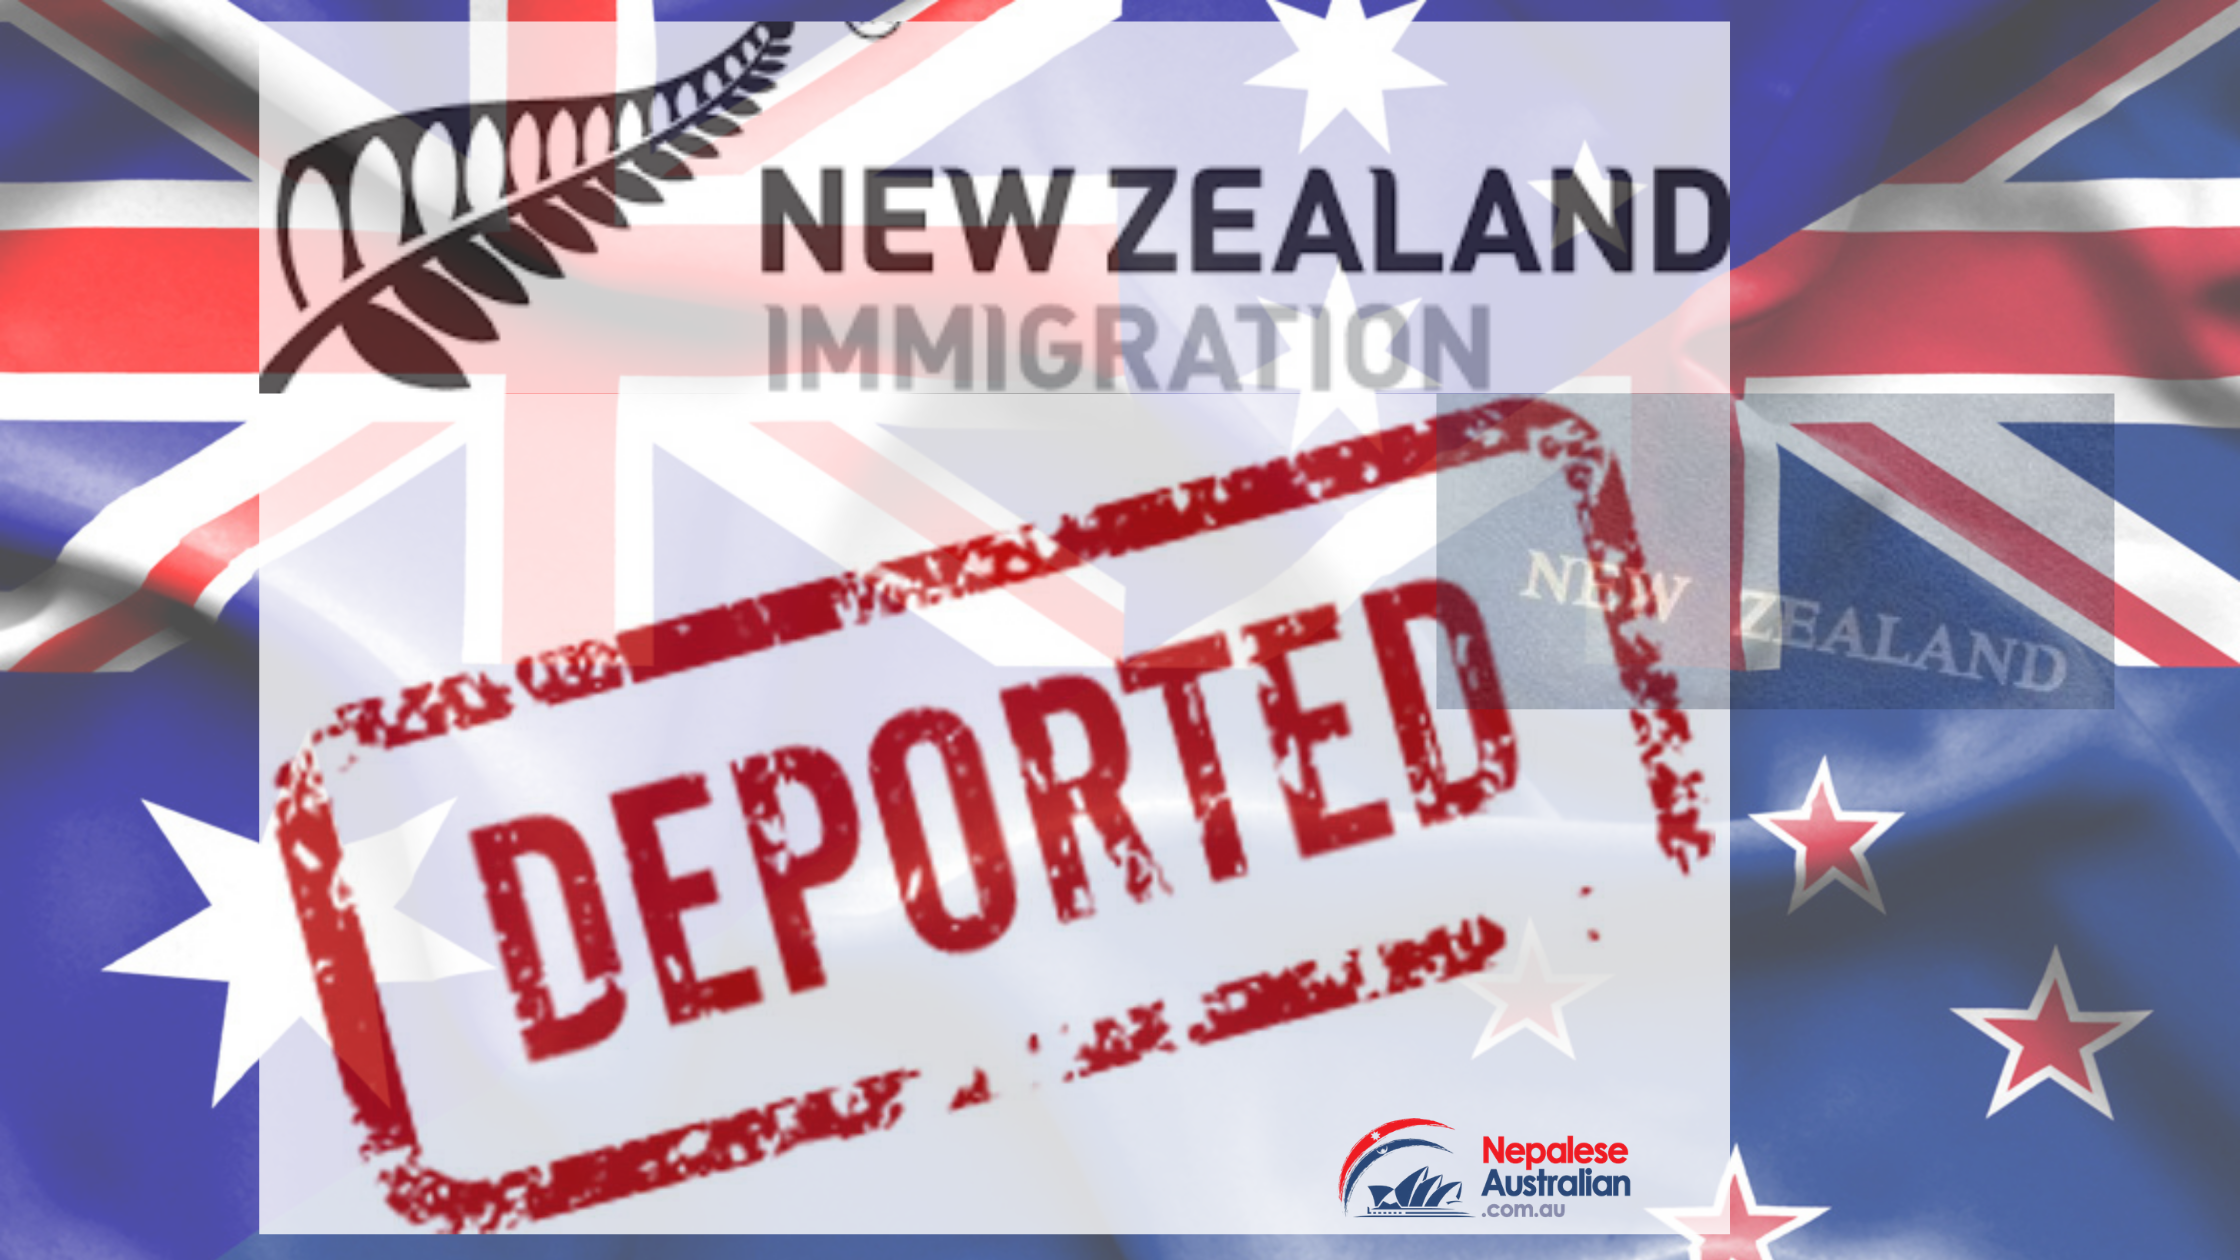 A Nepalese man has been ordered to leave New Zealand or risk deportation after he beat another man unconscious.